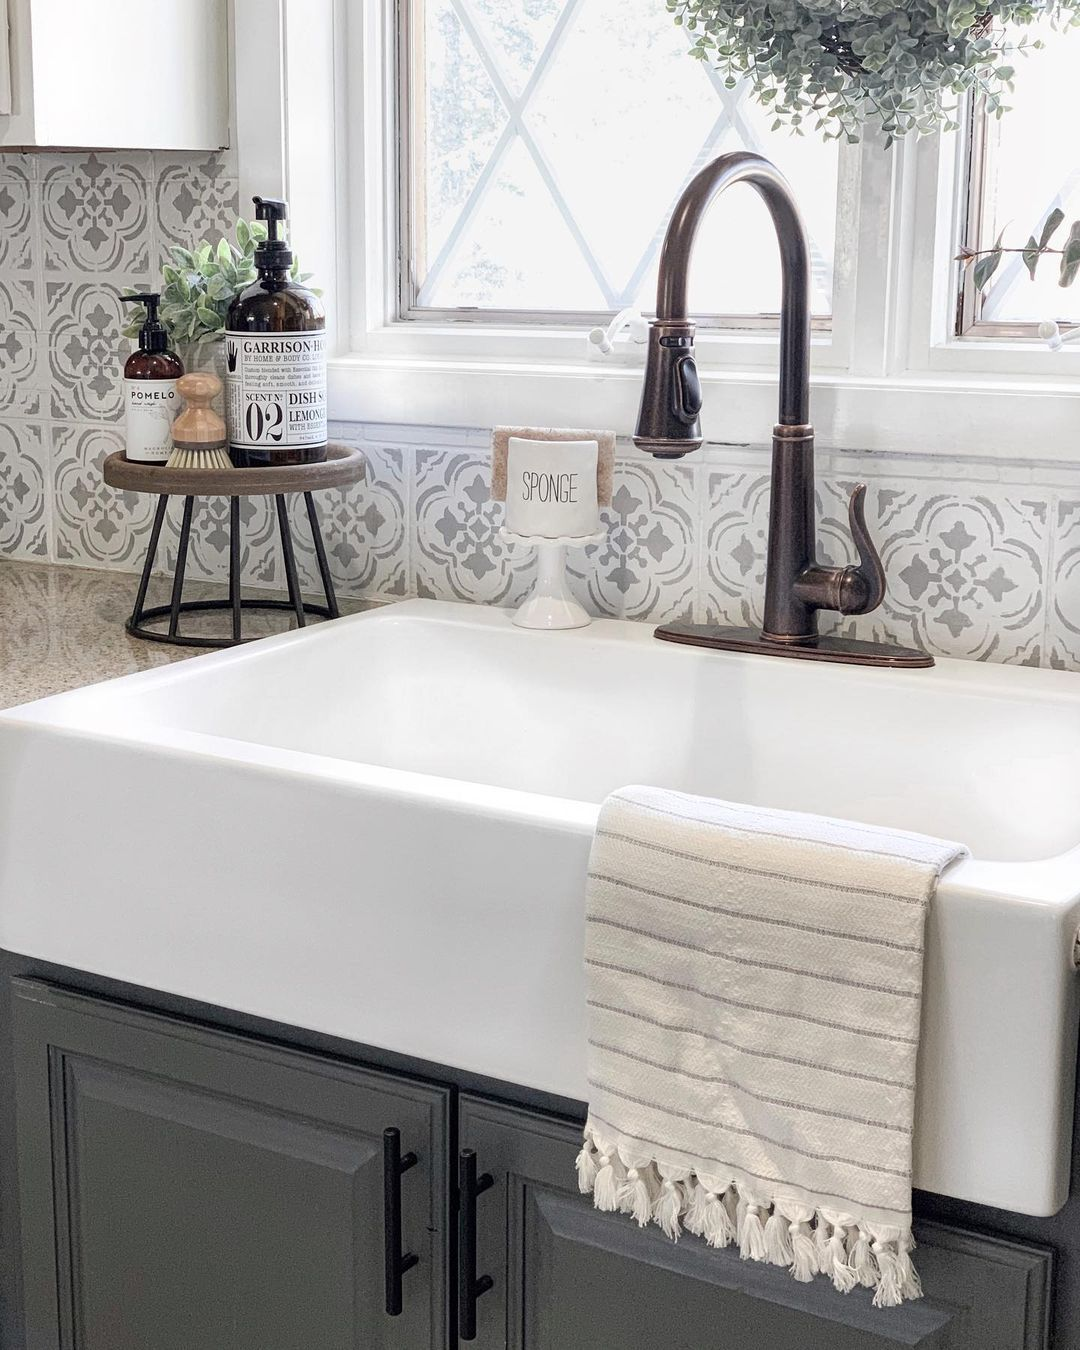 Farmhouse Kitchen Apron Front Sink über @blessed_ranch